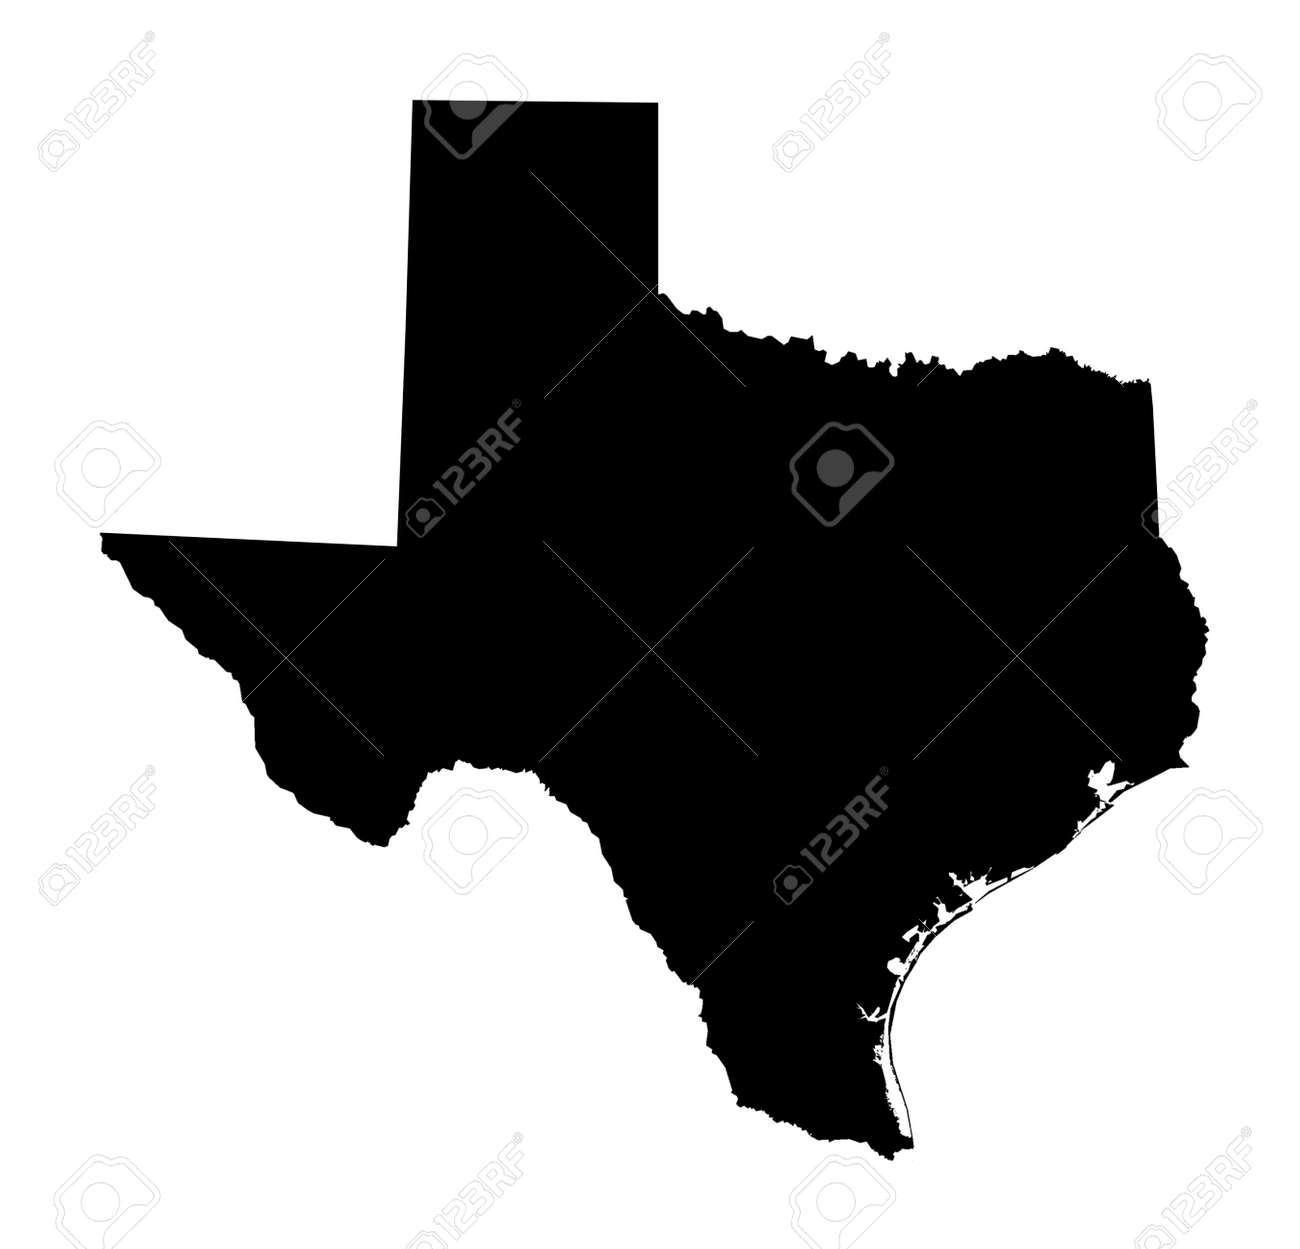 Texas Map Black And White Isolated Black And White Map Of Texas Stock Photo, Picture And